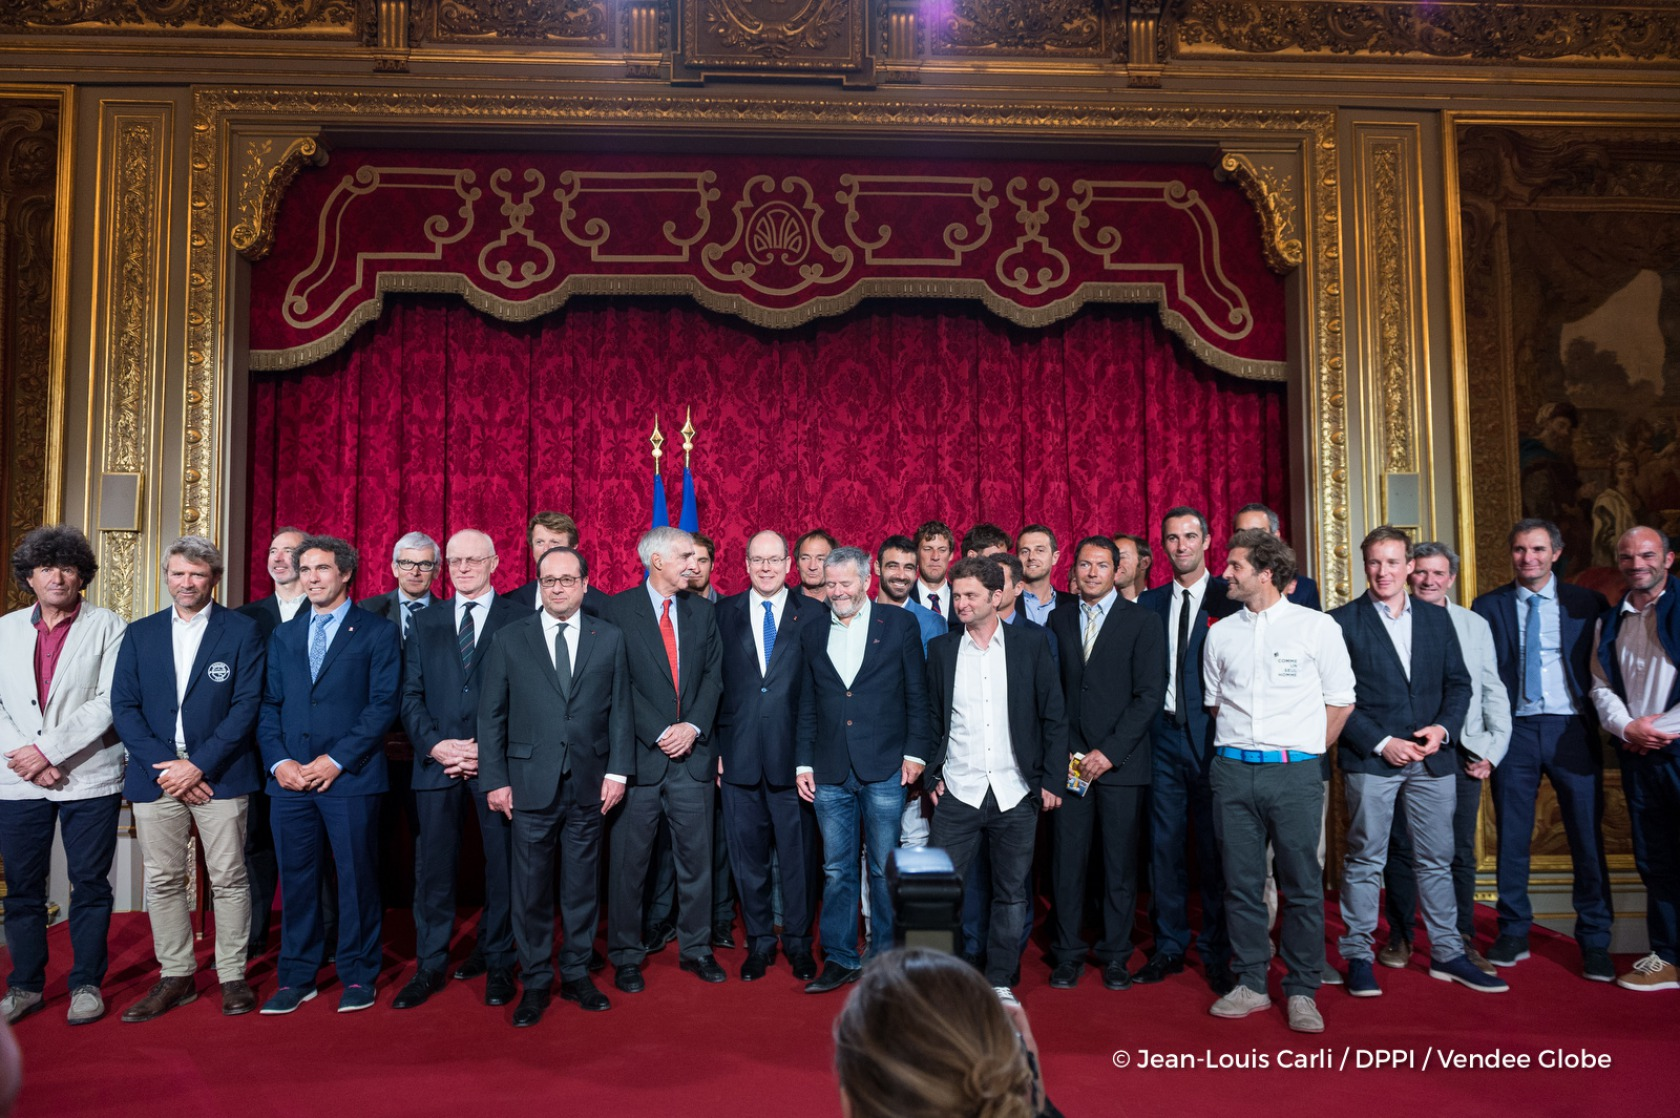 Skippers during the ceremony to honour sailing competitors, including Vendee Globe skippers, by French president Francois Hollande, at the Elysee presidential palace in Paris on April 20th, 2017 - Photo Jean-Louis Carli / DPPI